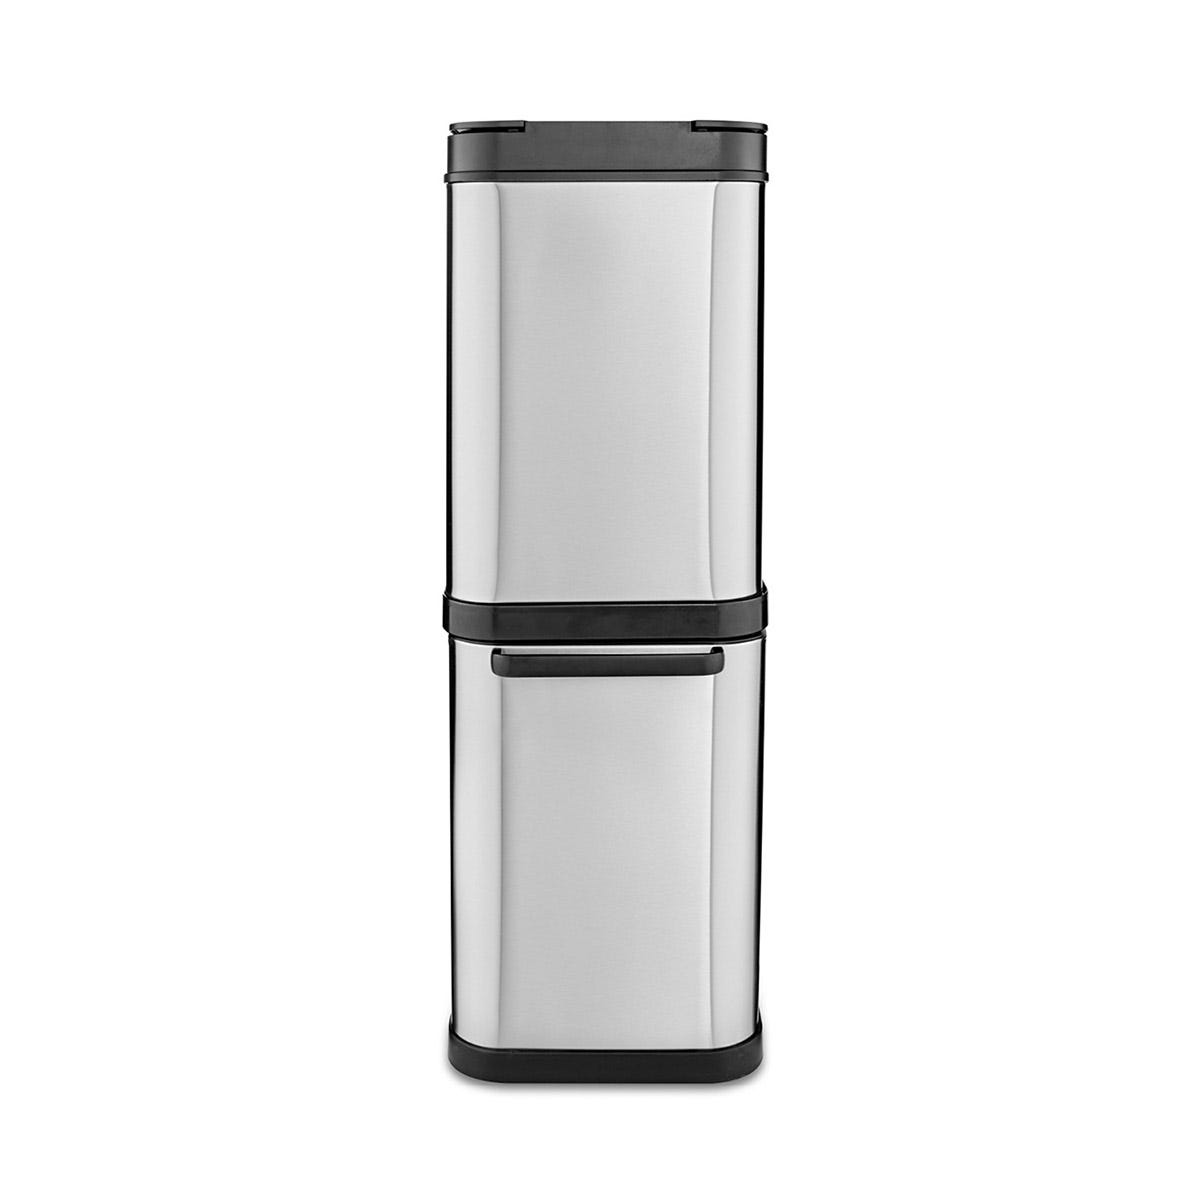 Tower 50L Dual Recycling Bin - Stainless Steel